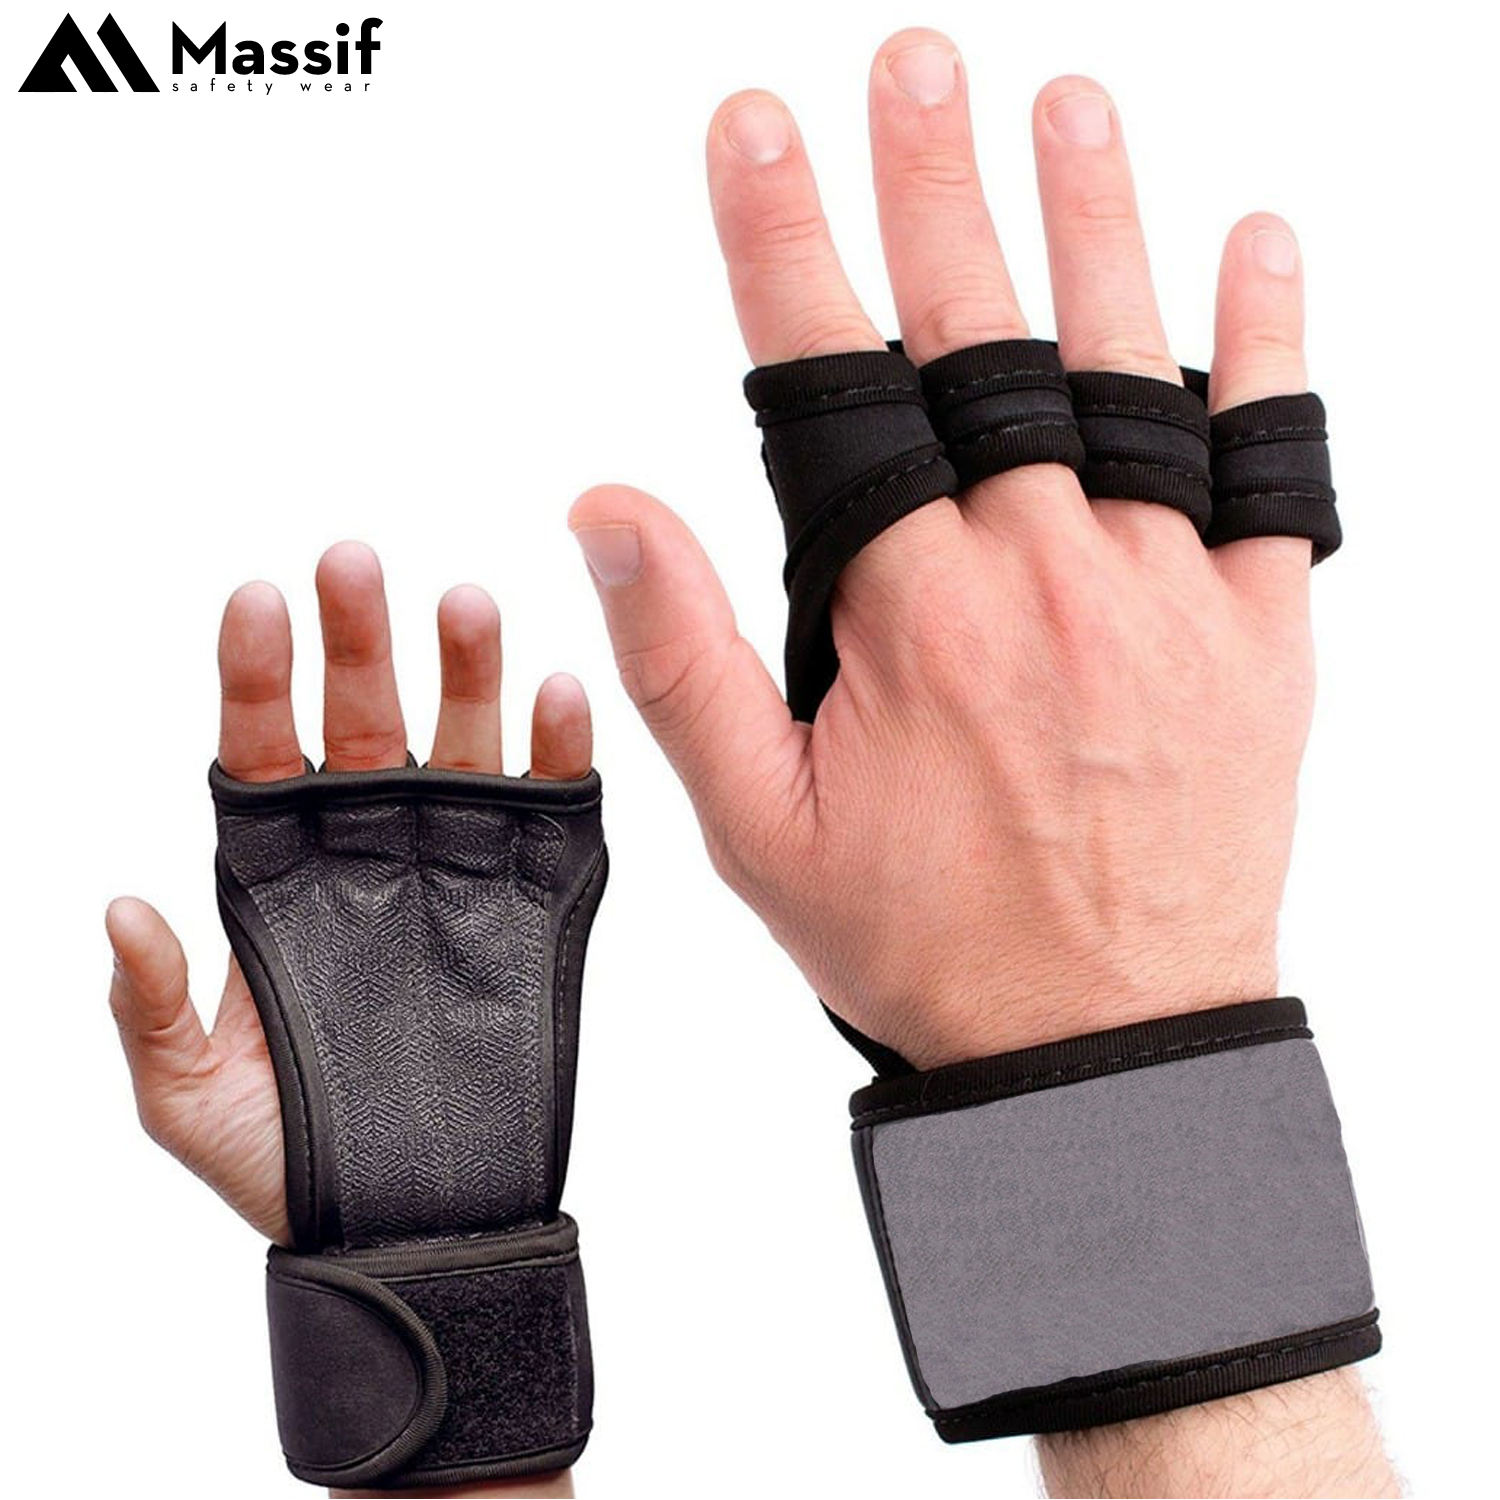 Amazon Best Selling Breathable Vented Wrist Protection Silicone Padded Workout Hand Protection Grips Ebay 2020 Version